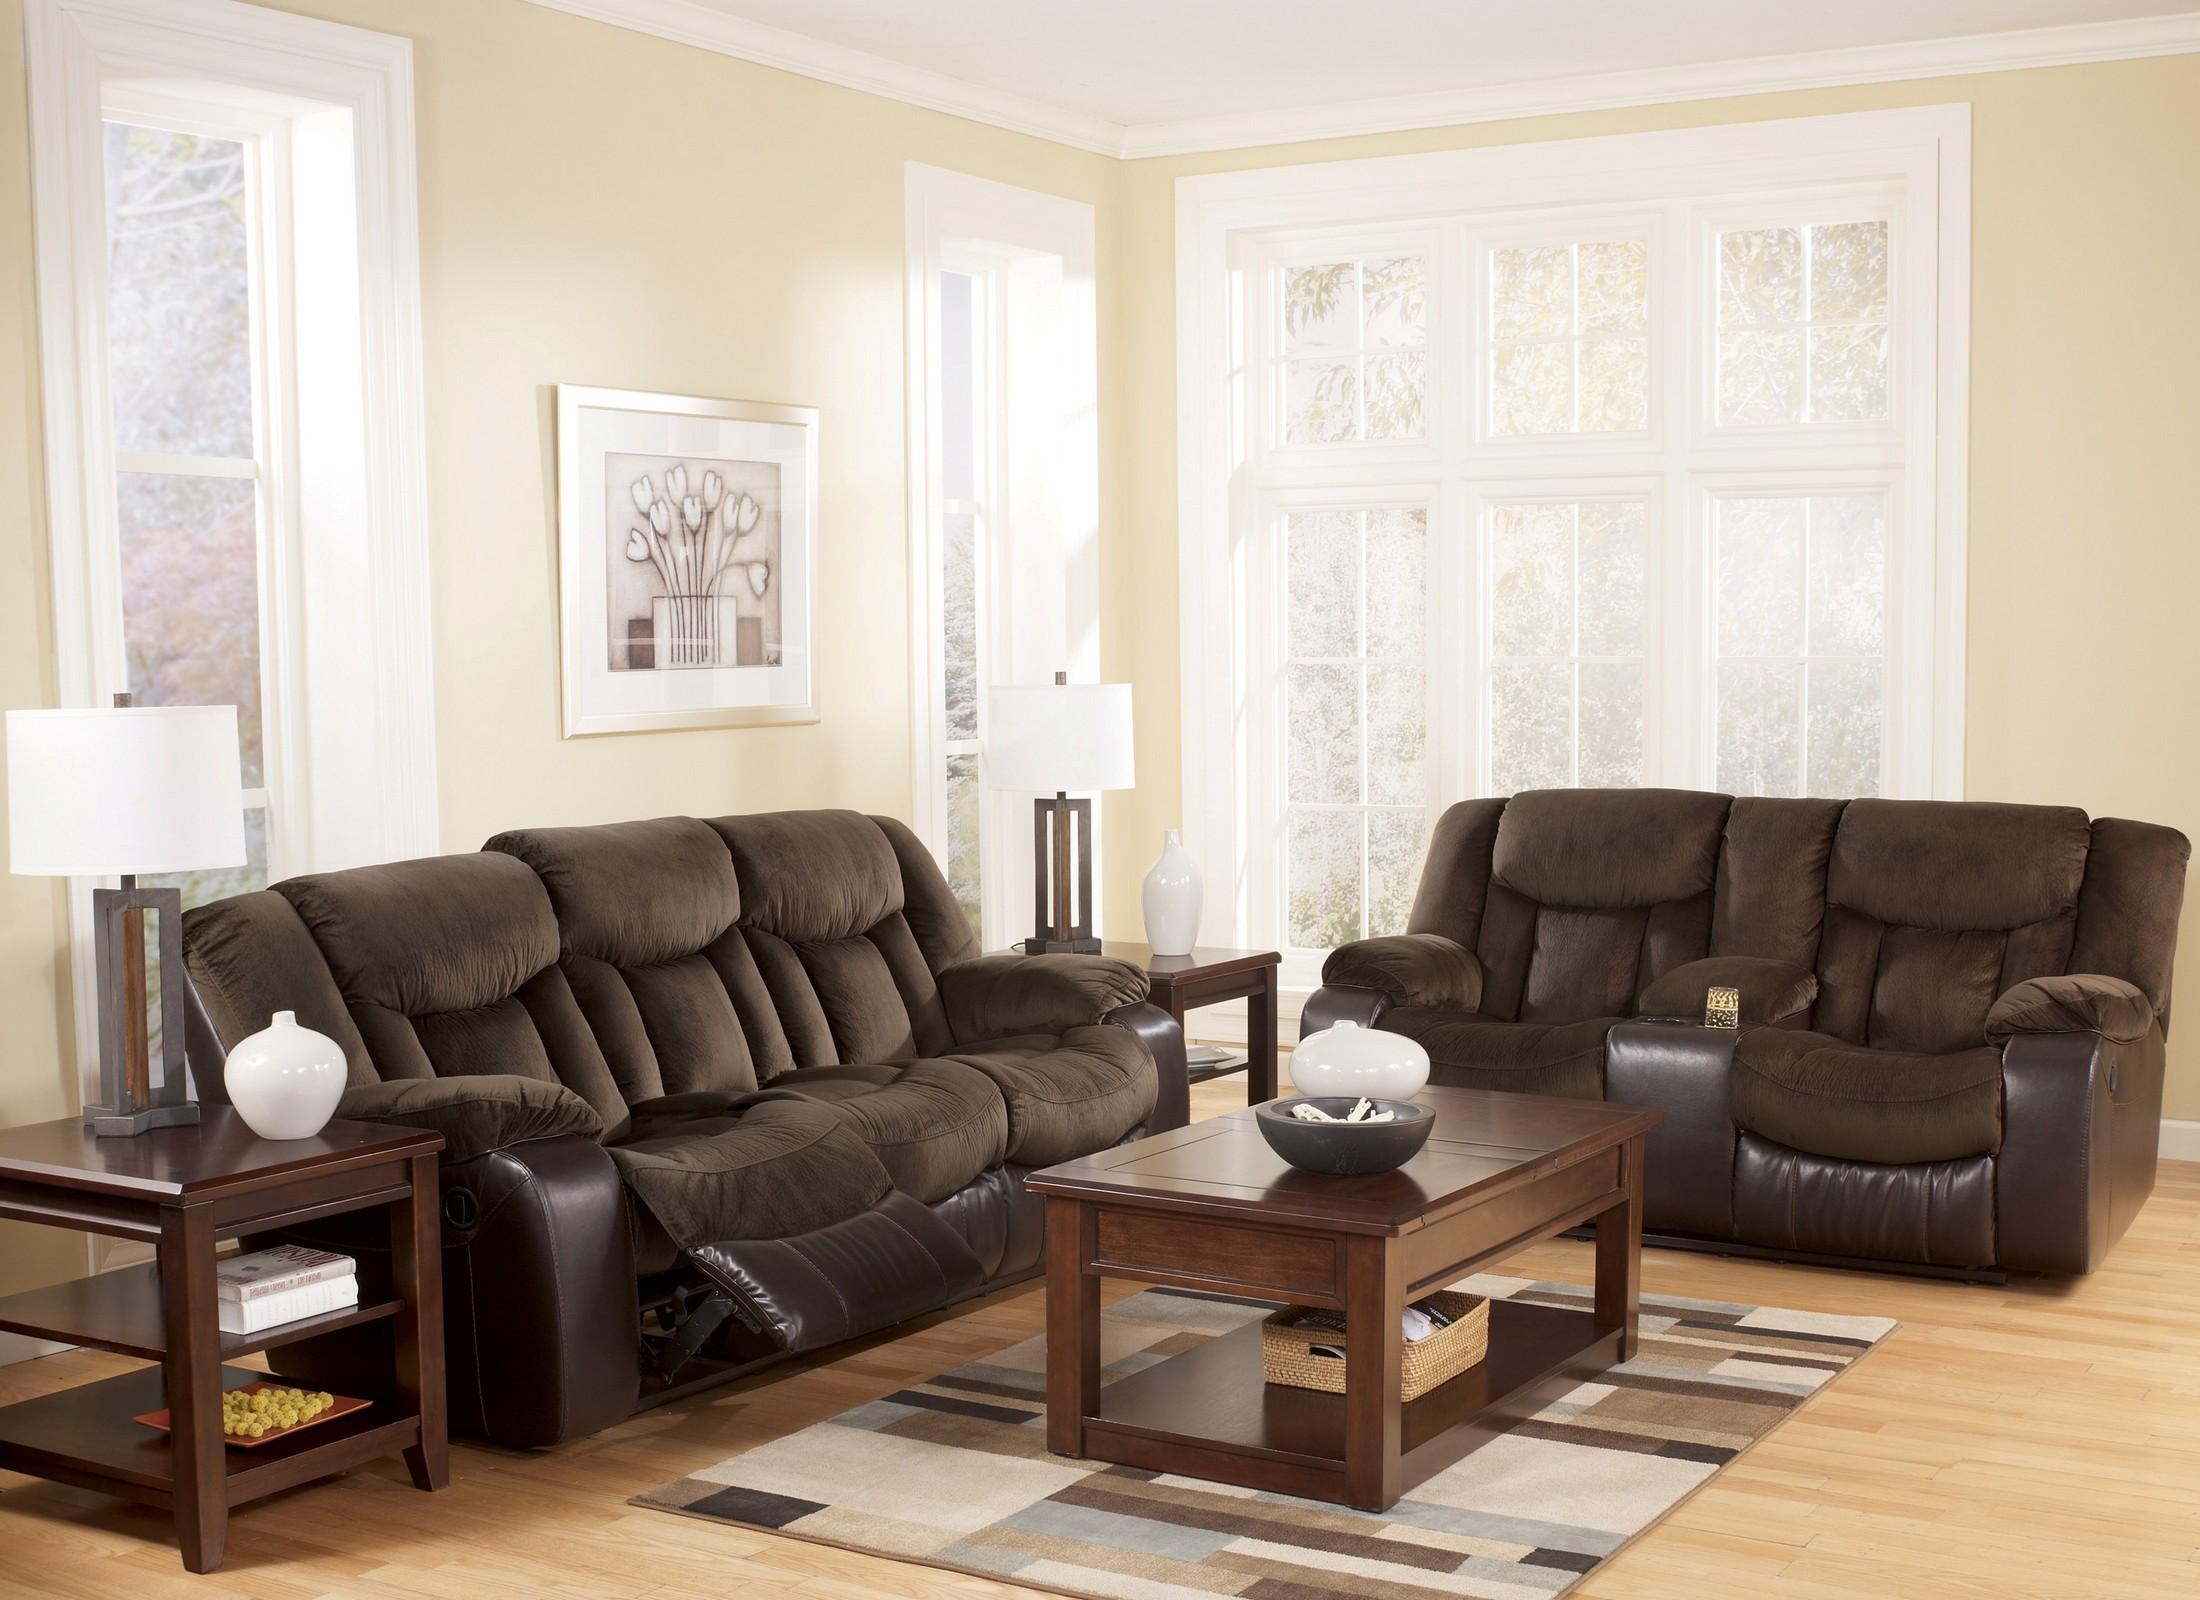 Tafton Java Reclining Living Room Set From Ashley 79202 Coleman Furniture